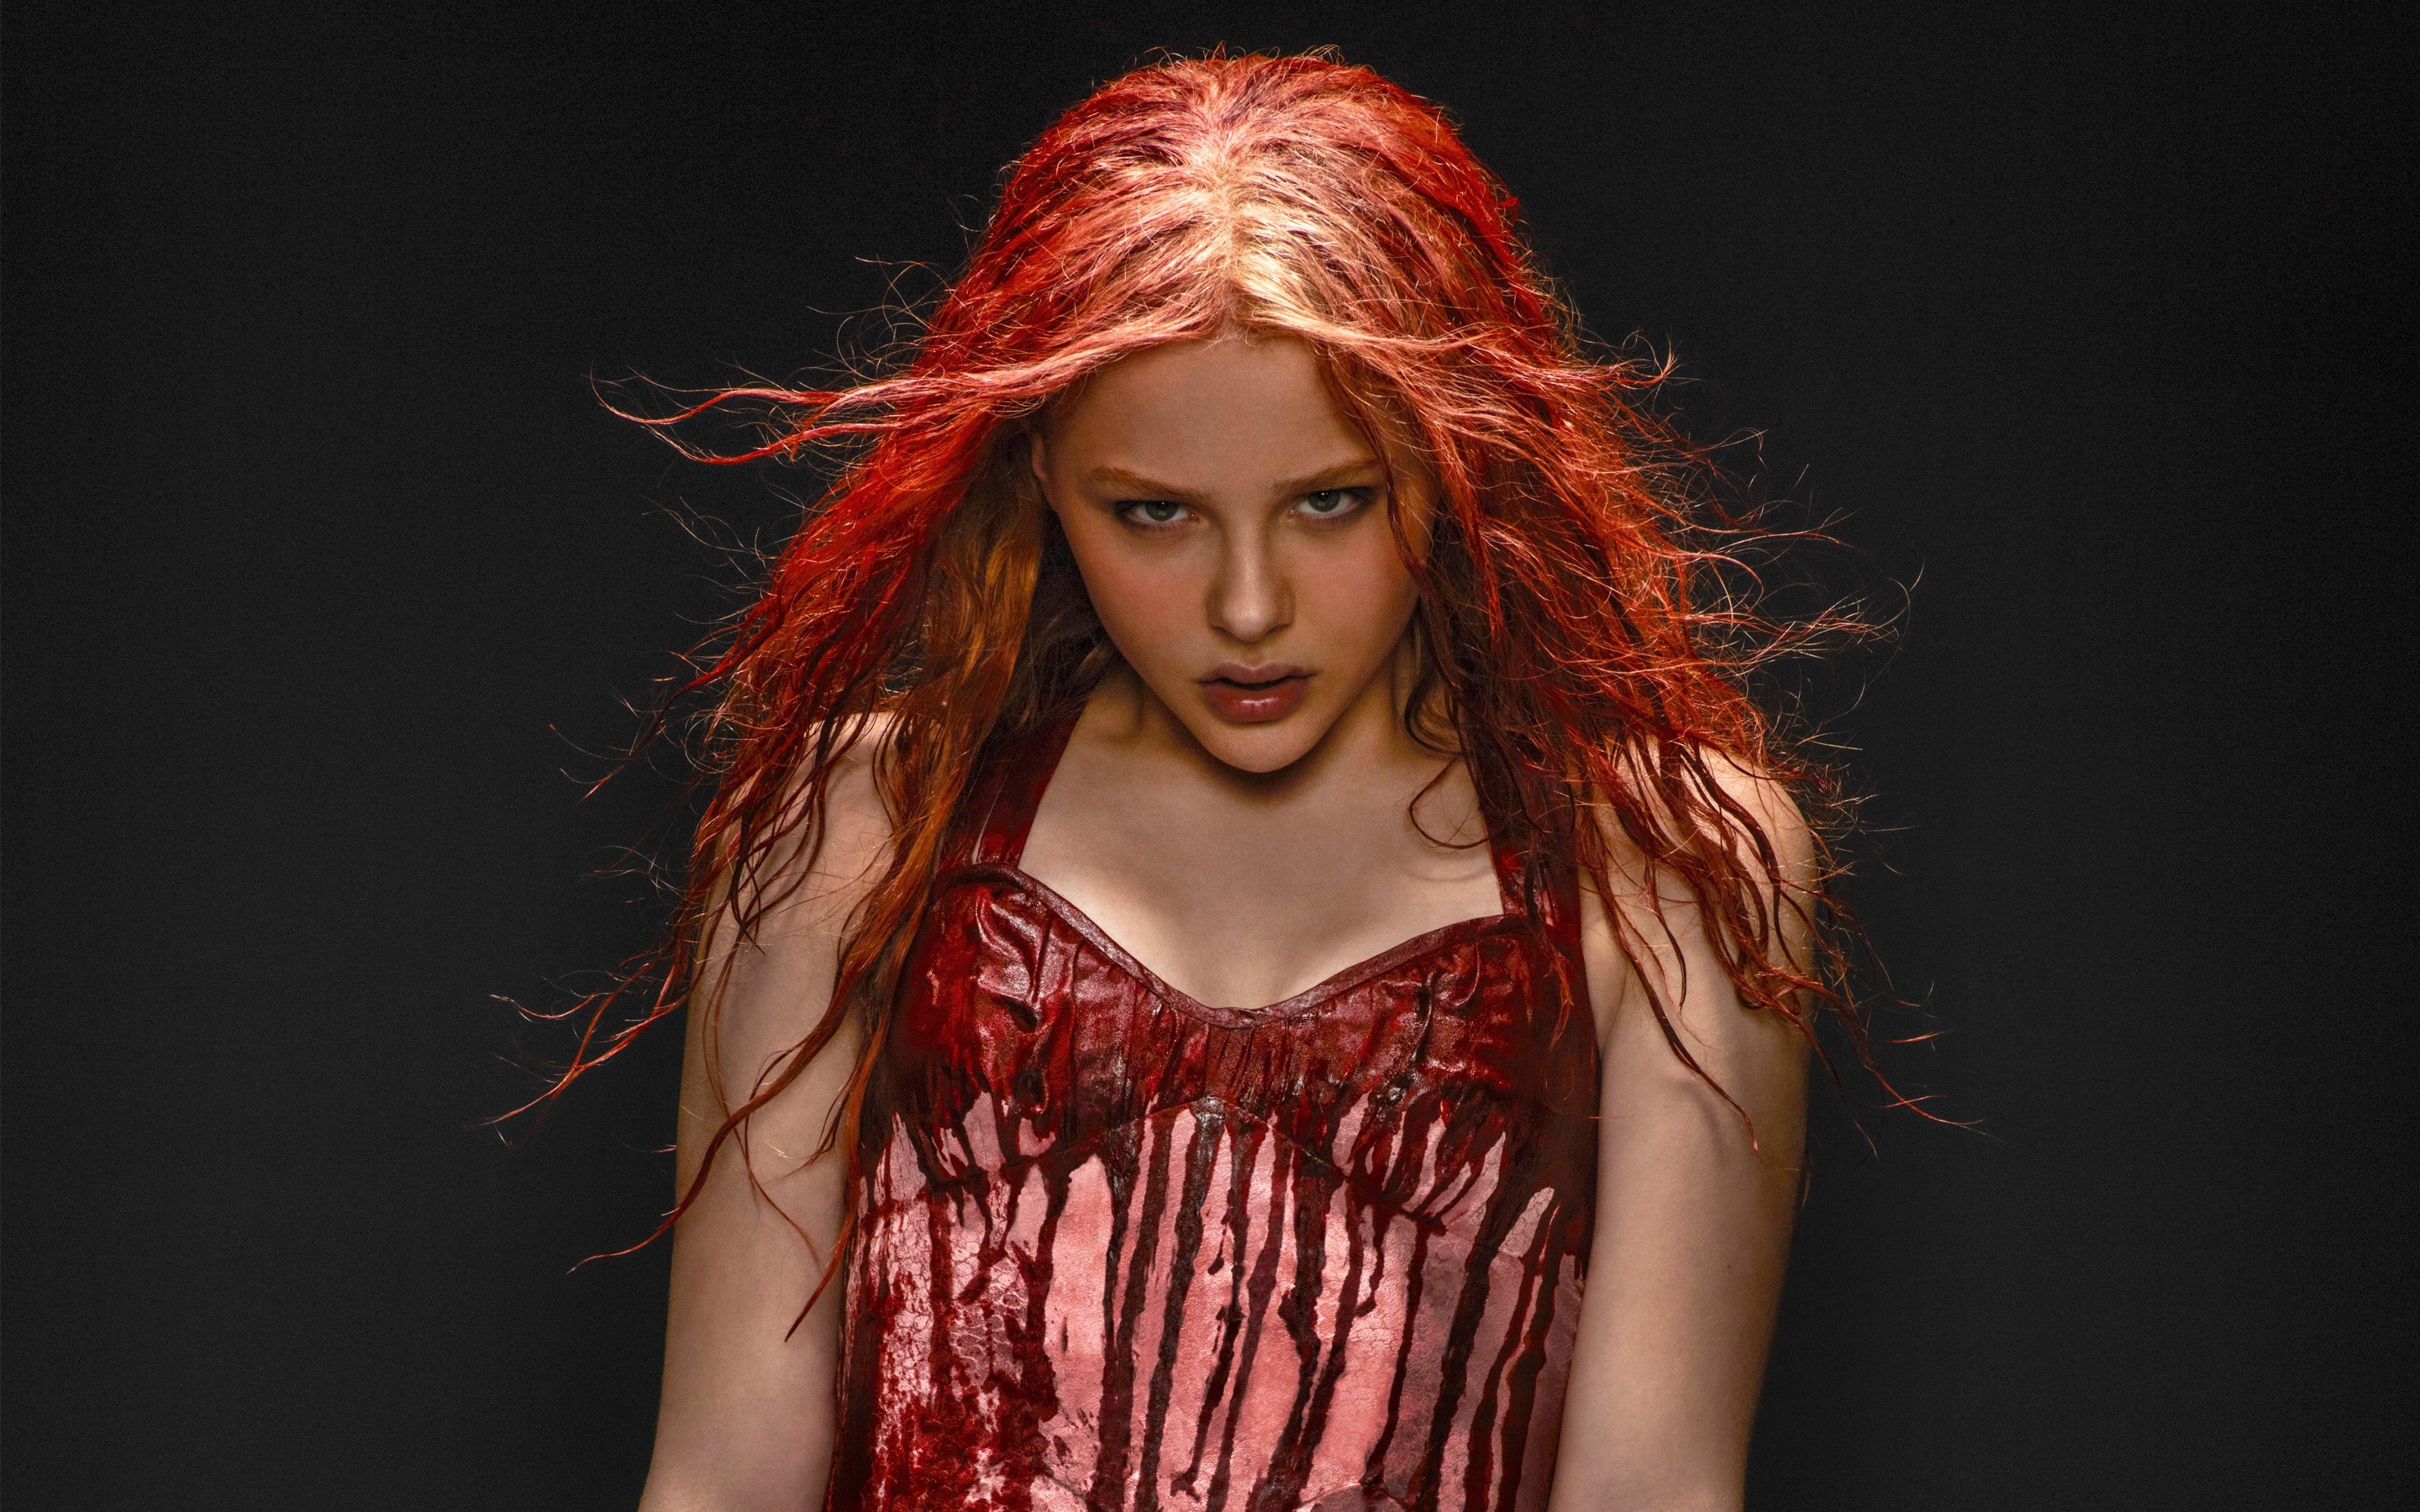 Wallpaper Chloe Moretz in Carrie